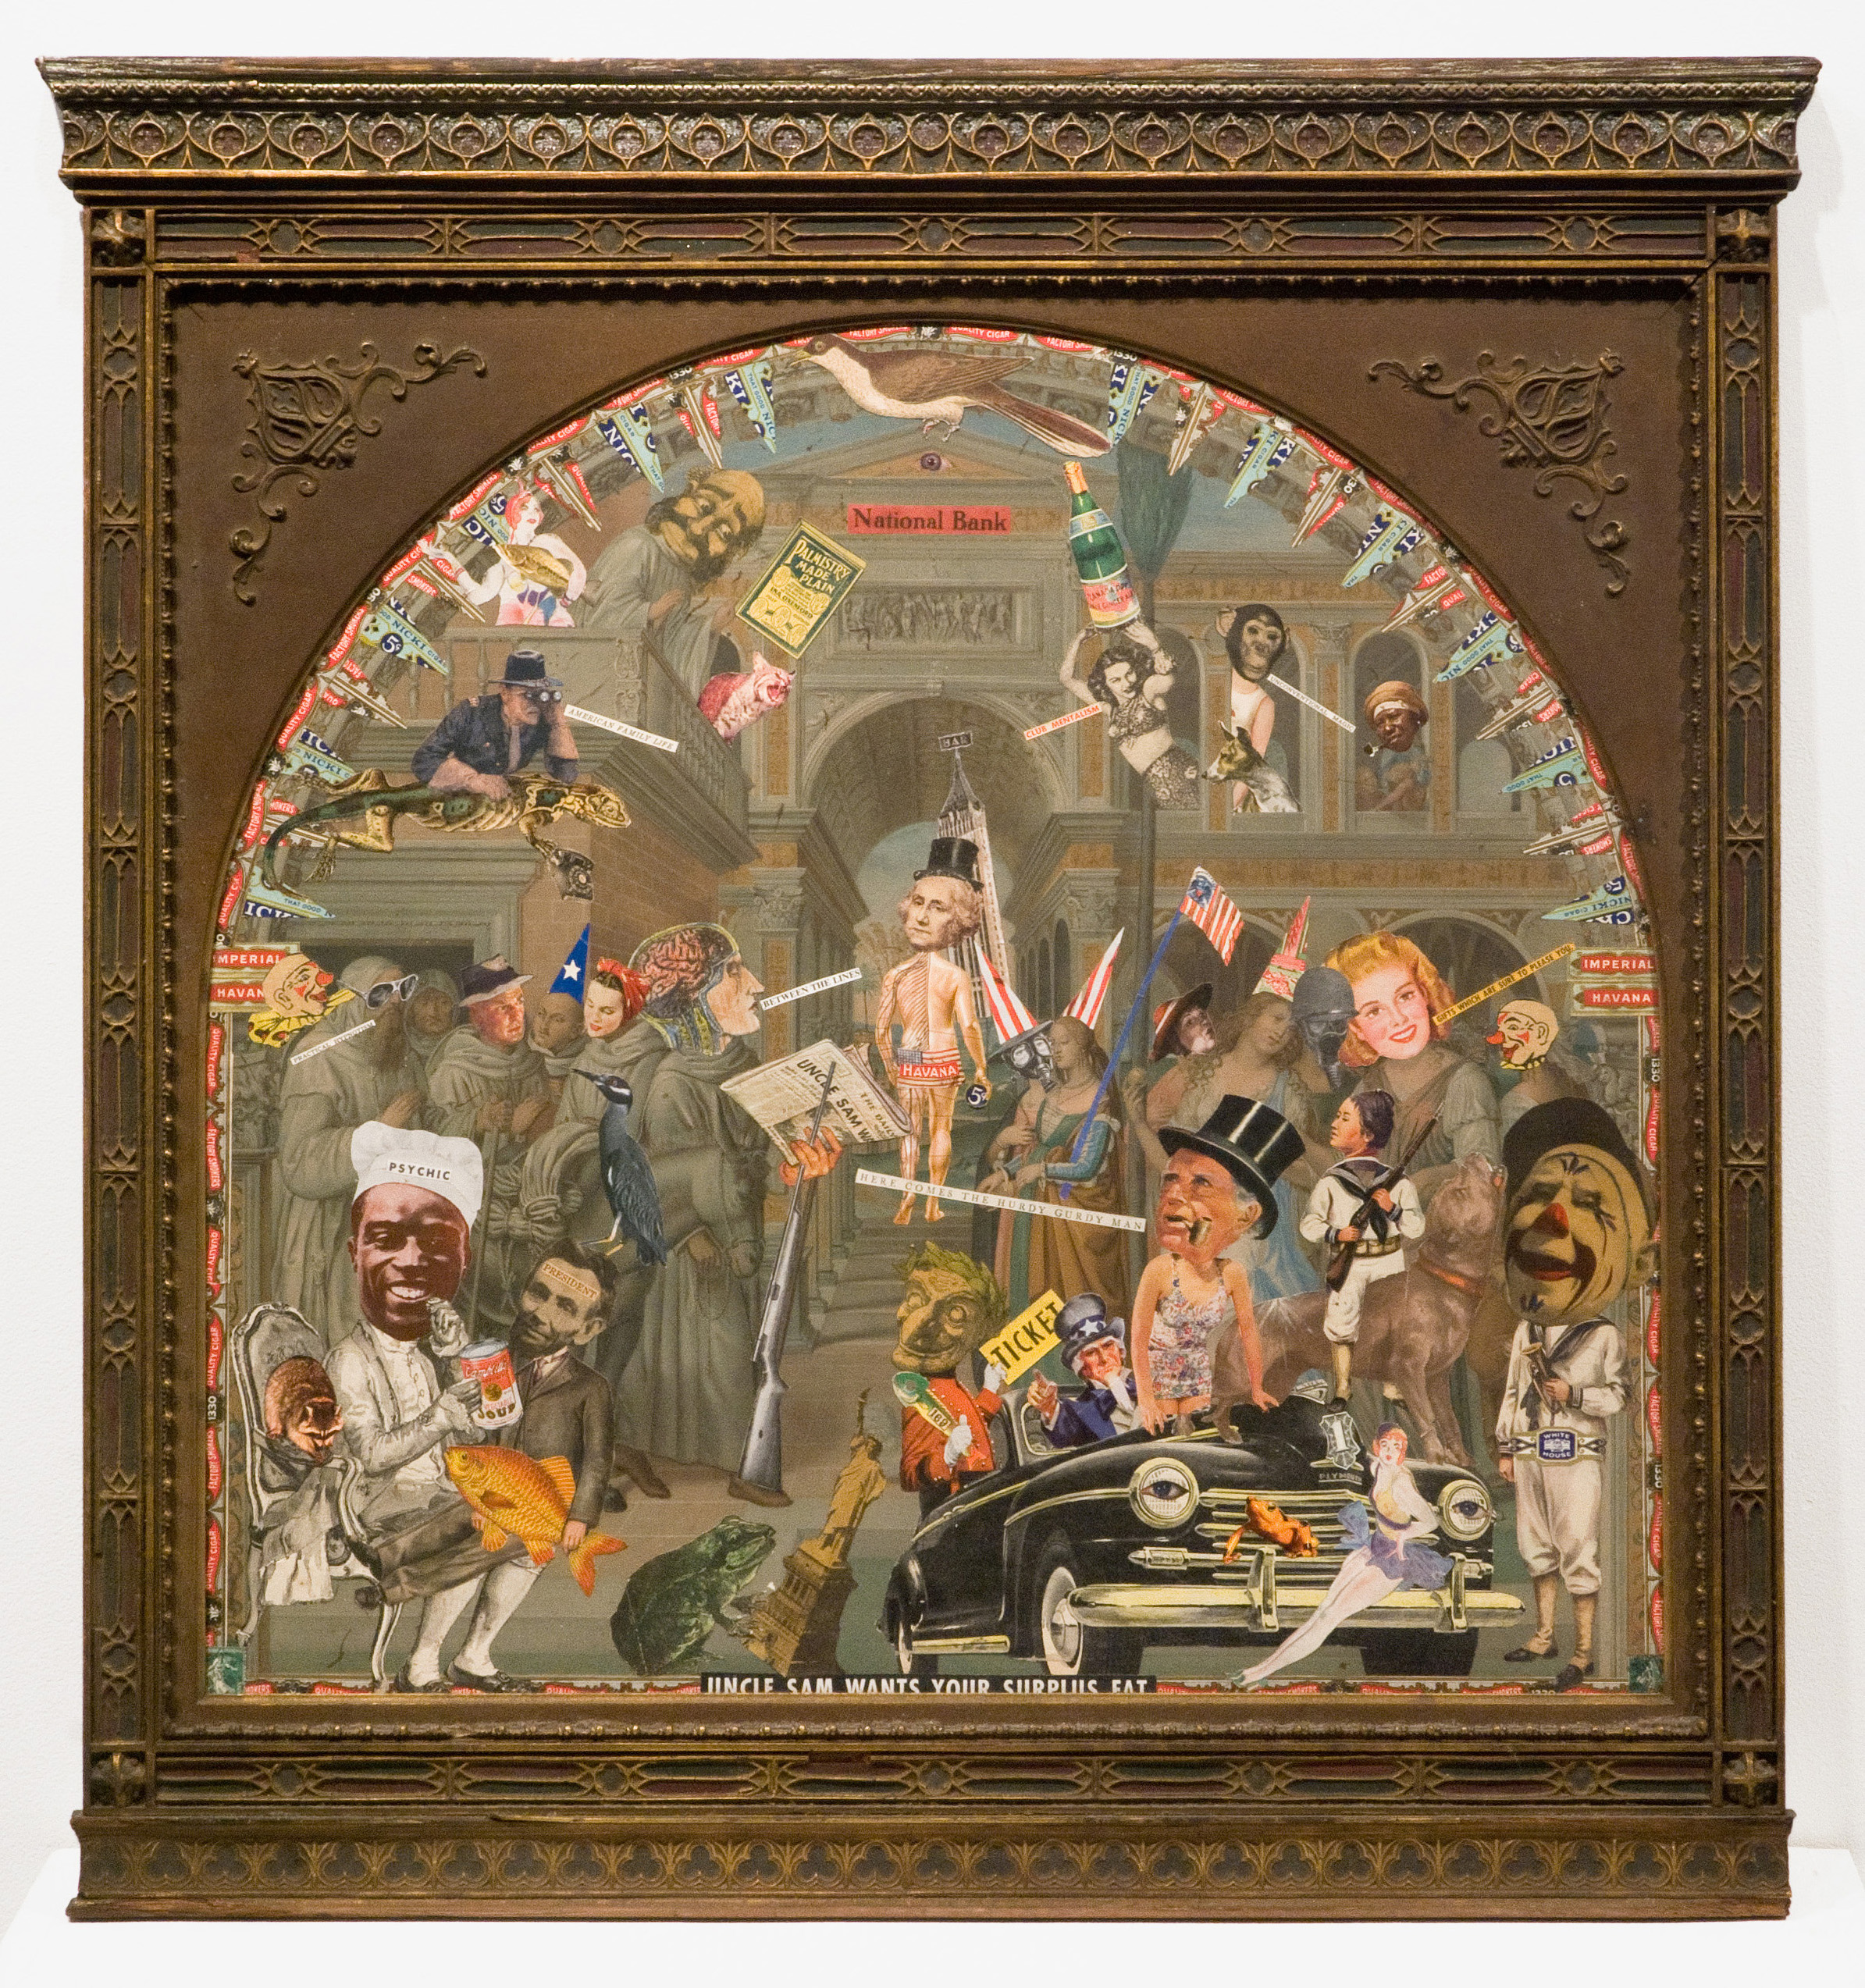 "Felipe Jesus Consalvos, ""Uncle Sam Wants Your Surplus Fat"", c. 1920-1960s, mixed media collage in frame, 27 3/4 x 27 inches"